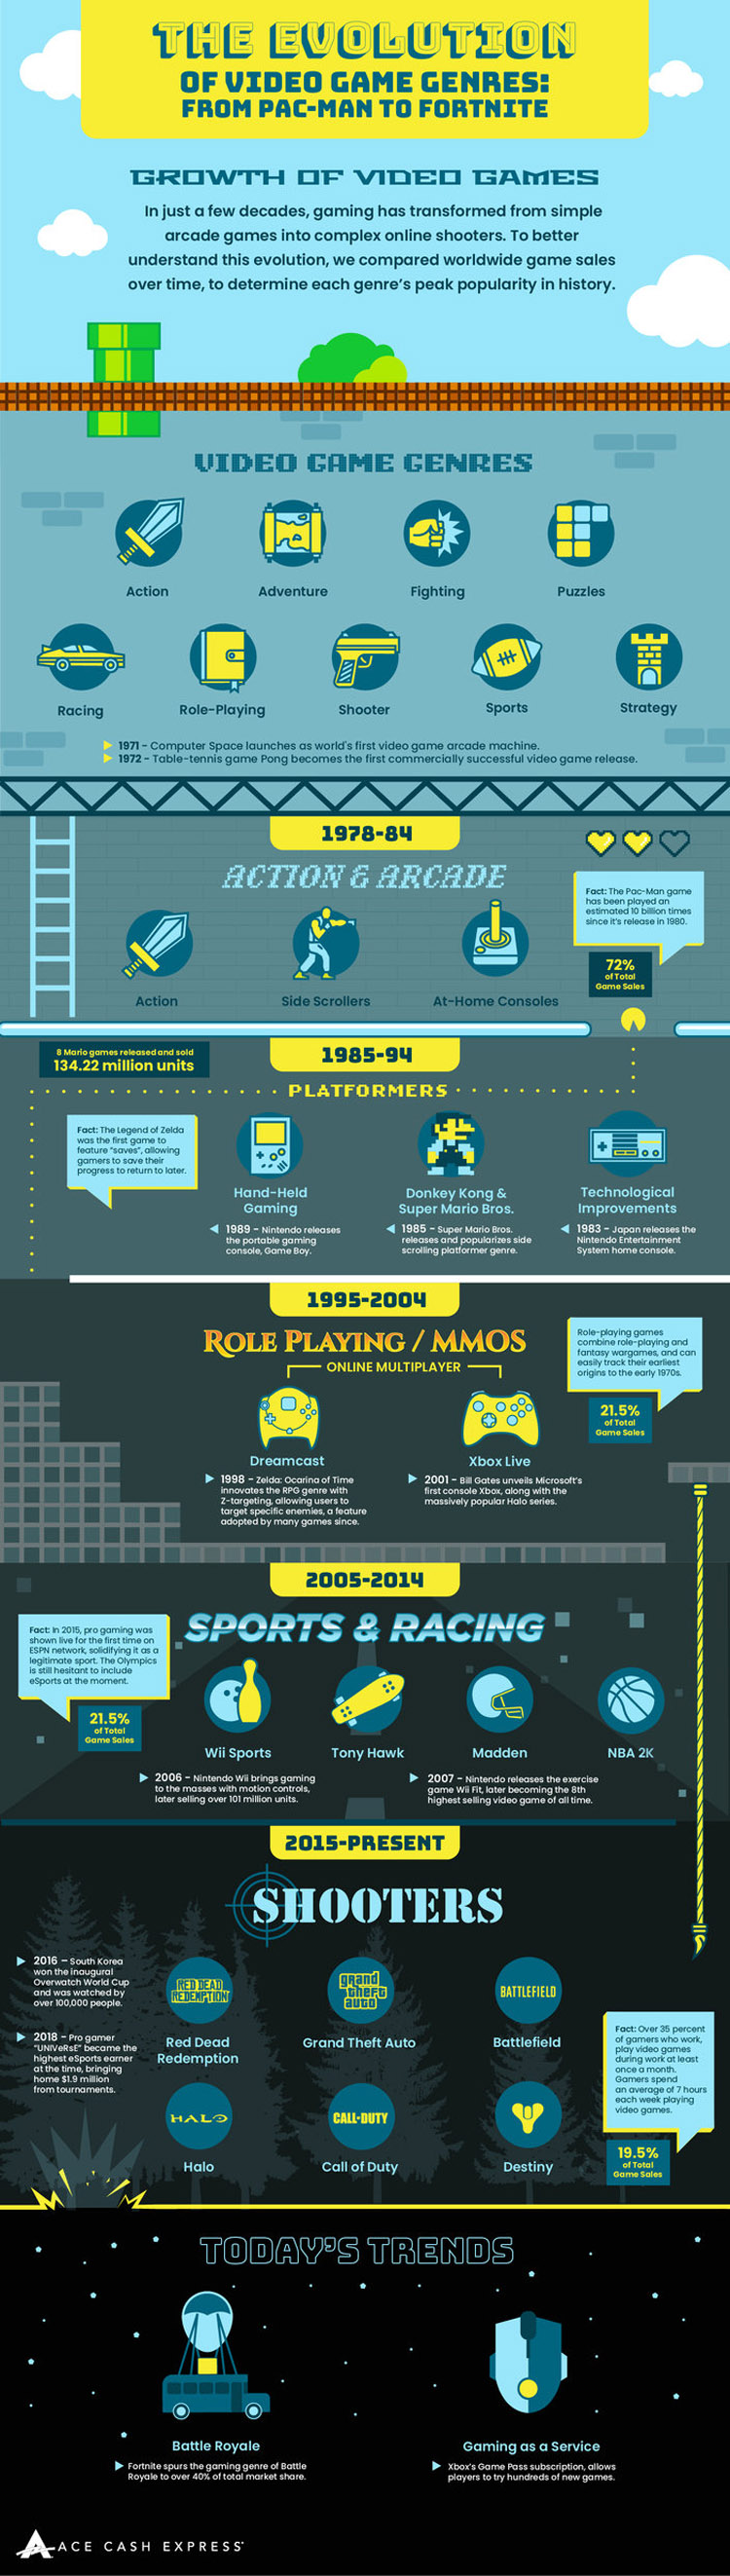 The Evolution of Video Game Genres: From Pac-Man to Fortnite